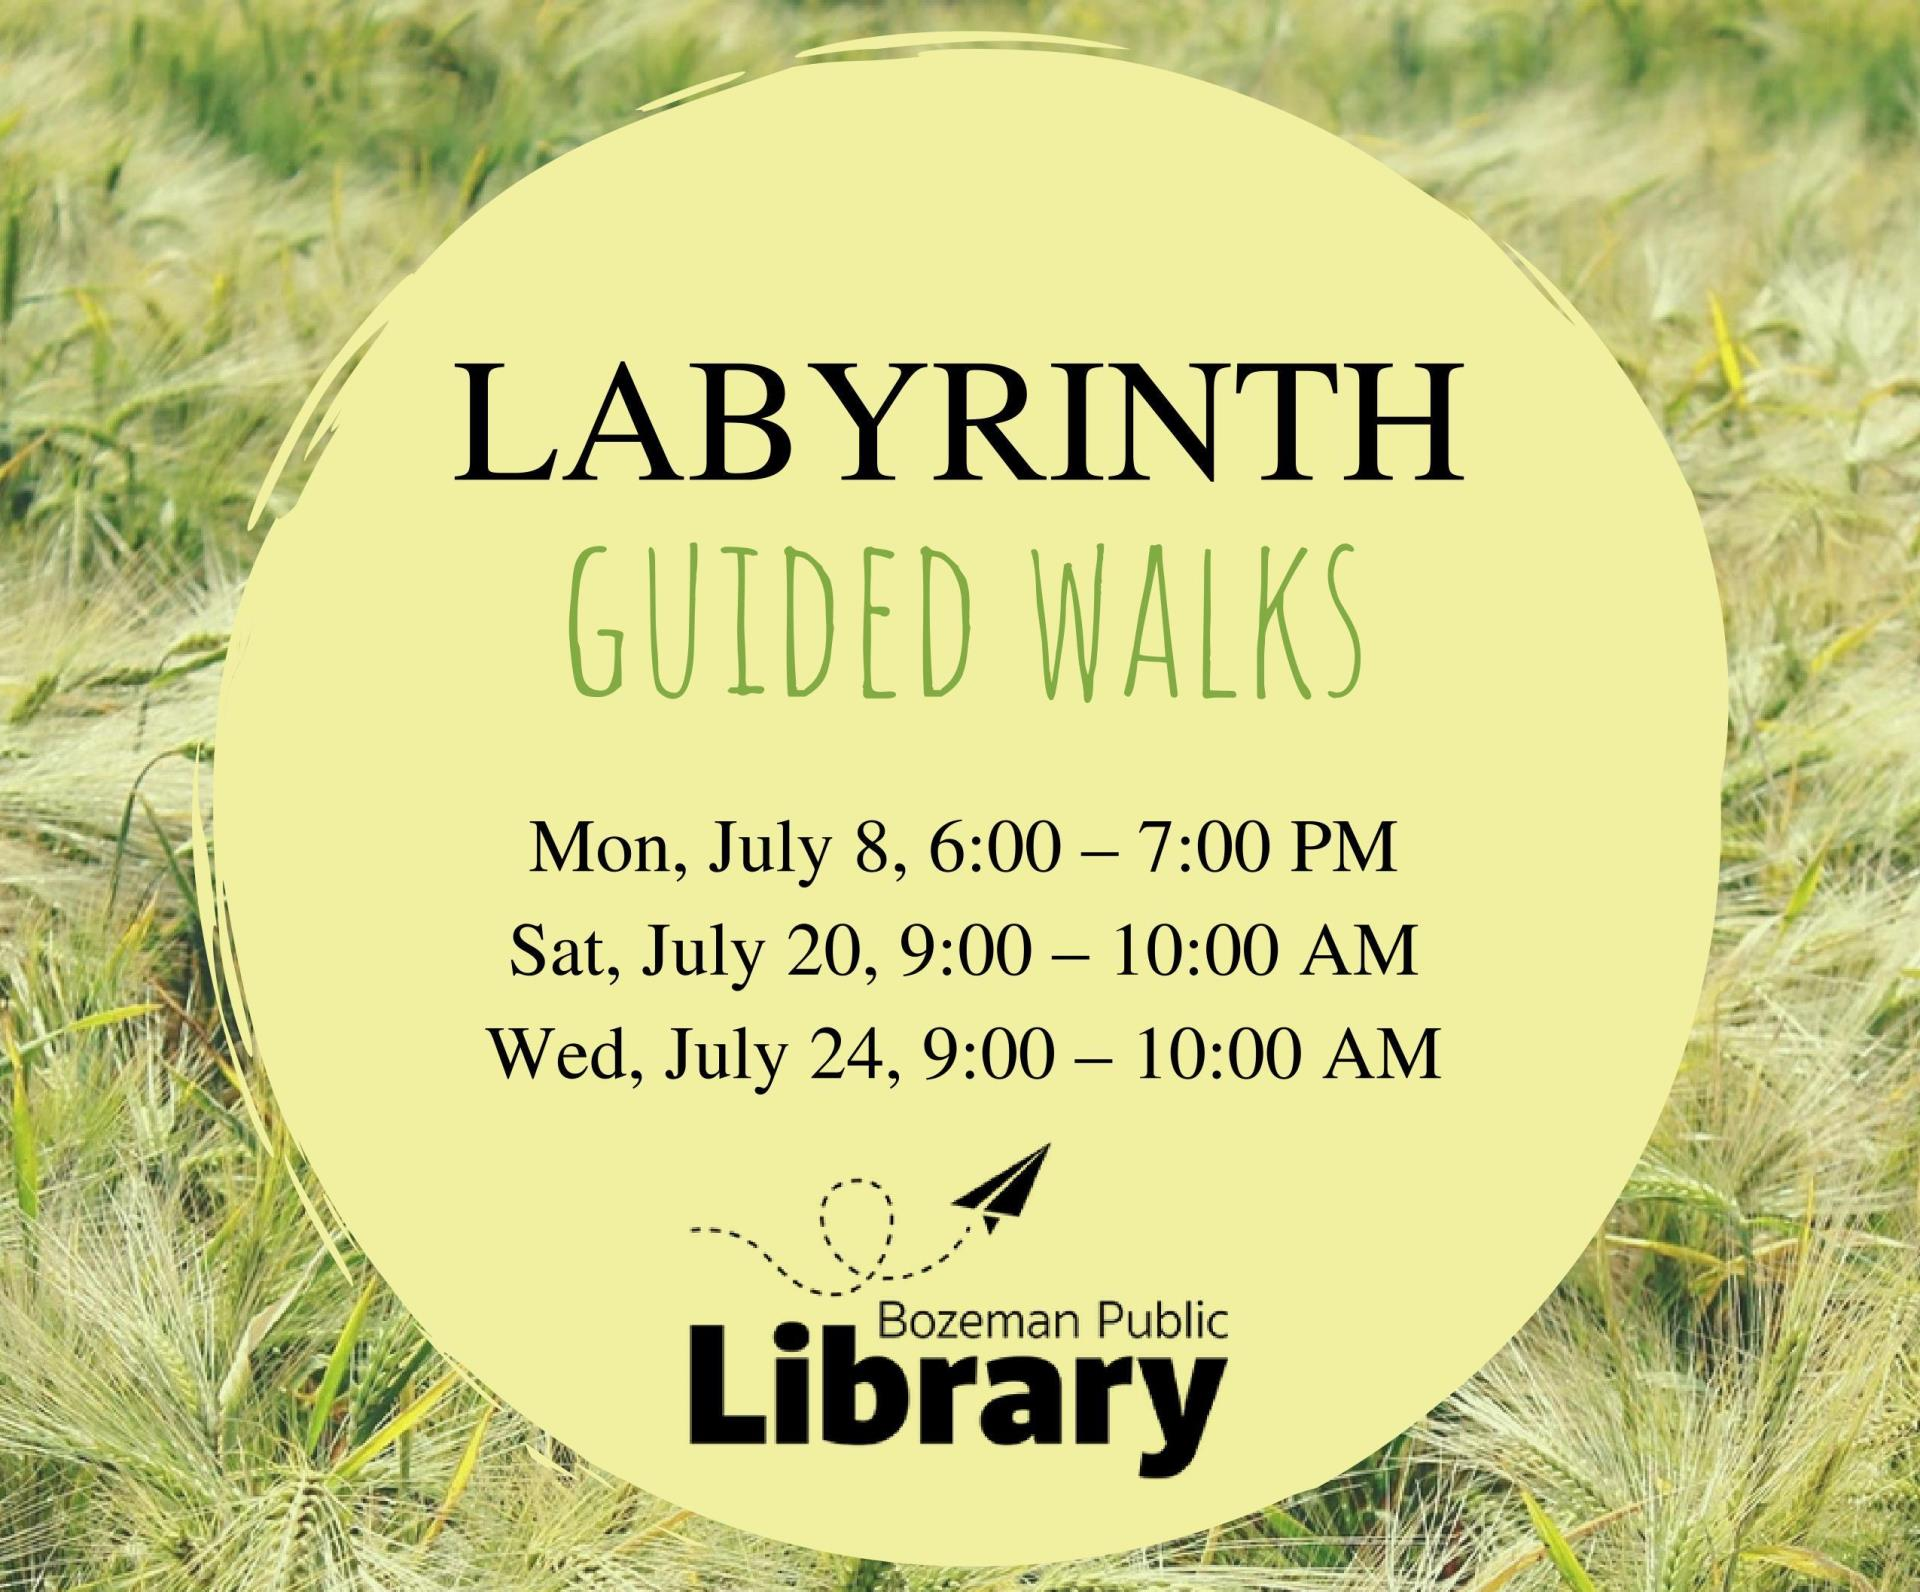 Labyrinth Guided Walks Image